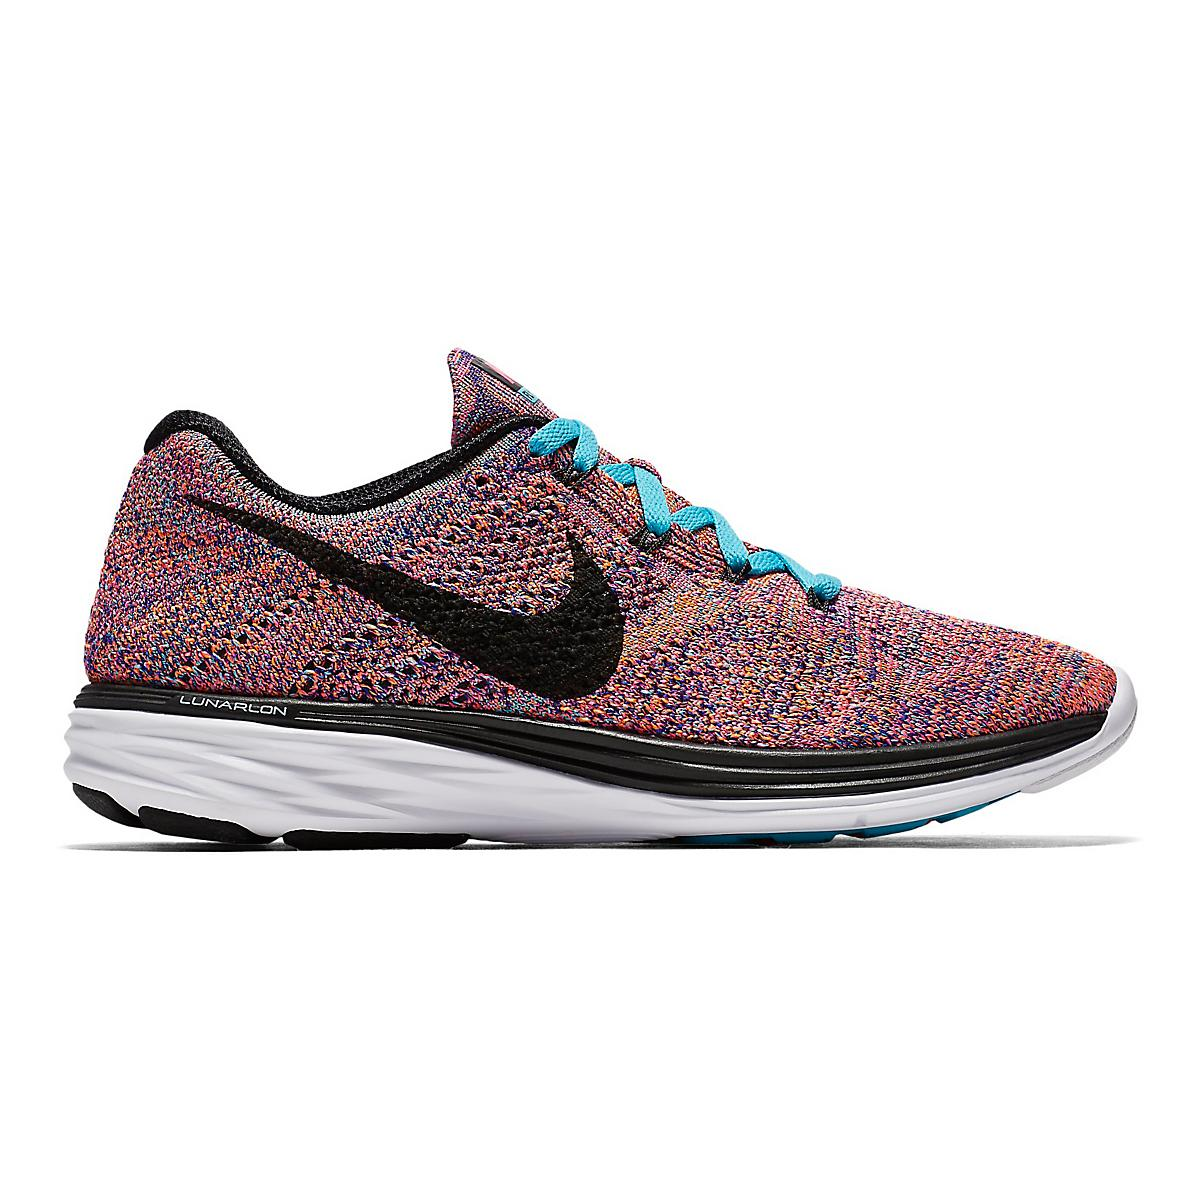 official photos f93a8 b170c Womens Nike Flyknit Lunar 3 Running Shoe at Road Runner Sports